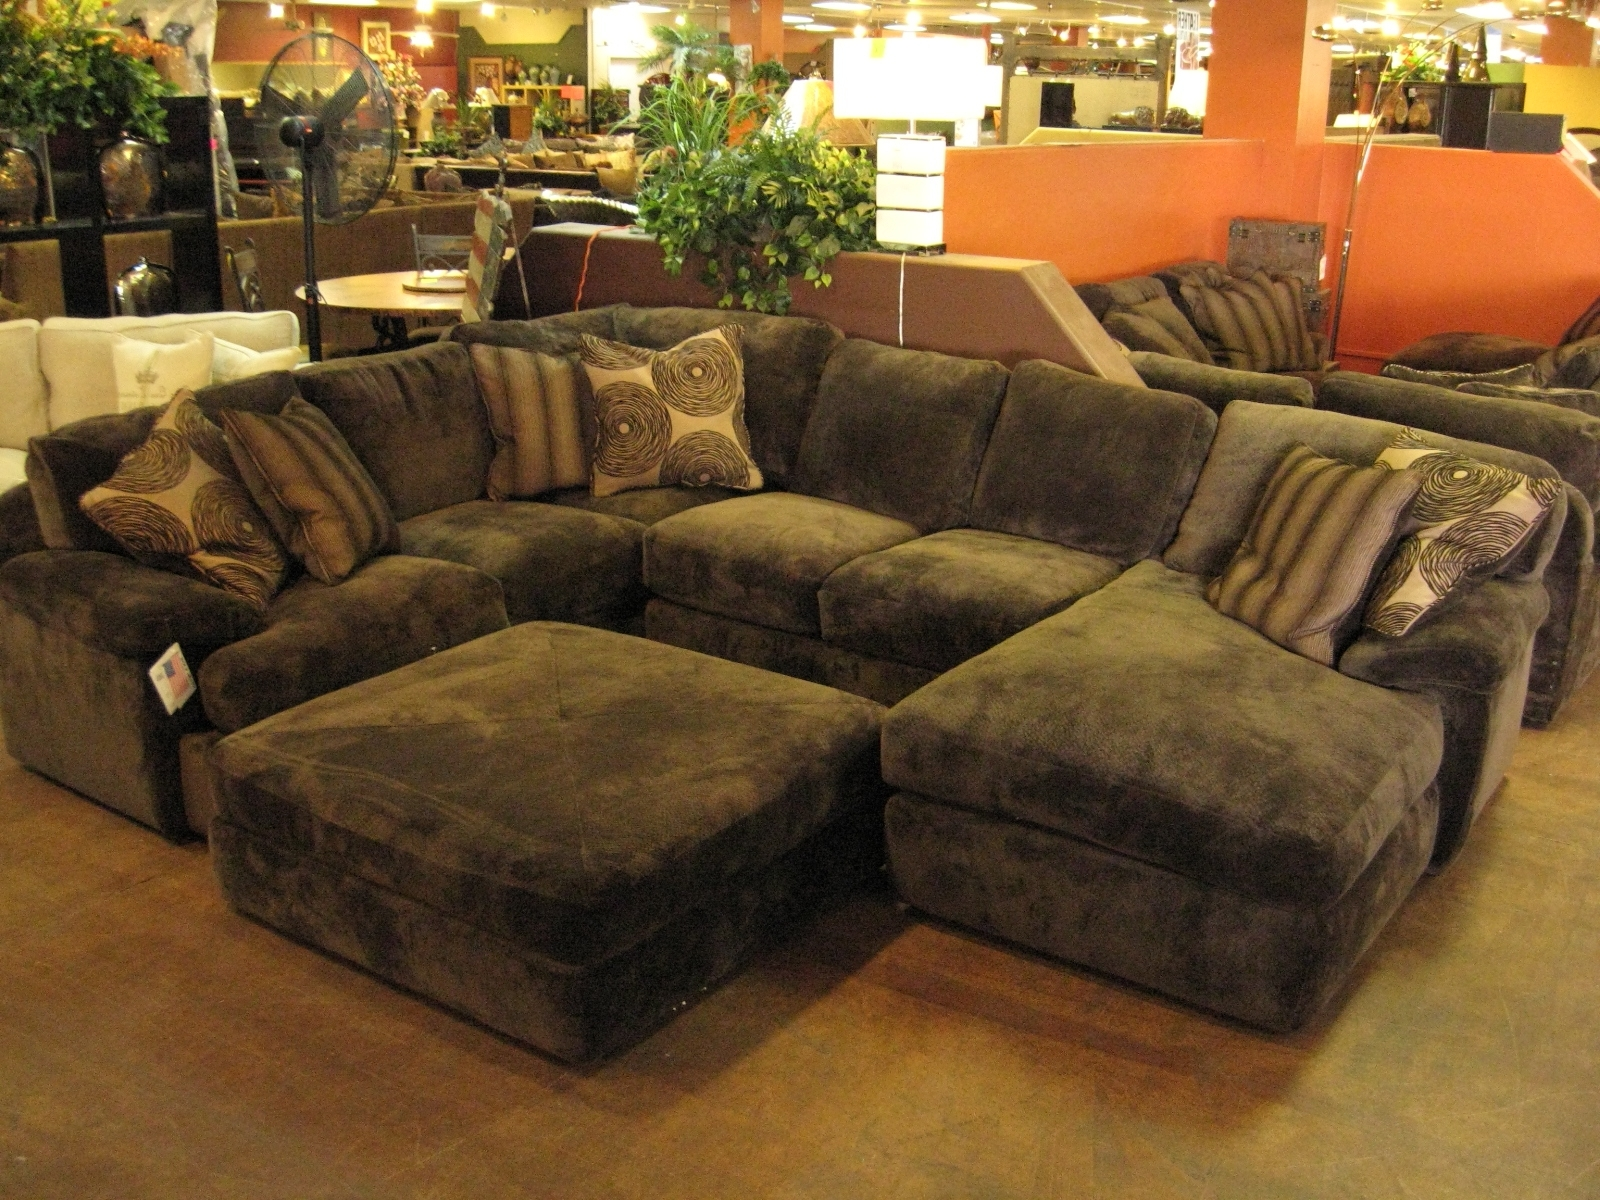 Most Current Black Velvet Fabric Sectional Sleeper Sofa With Chaise Lounge And Regarding Sectional Couches With Chaise (View 12 of 15)